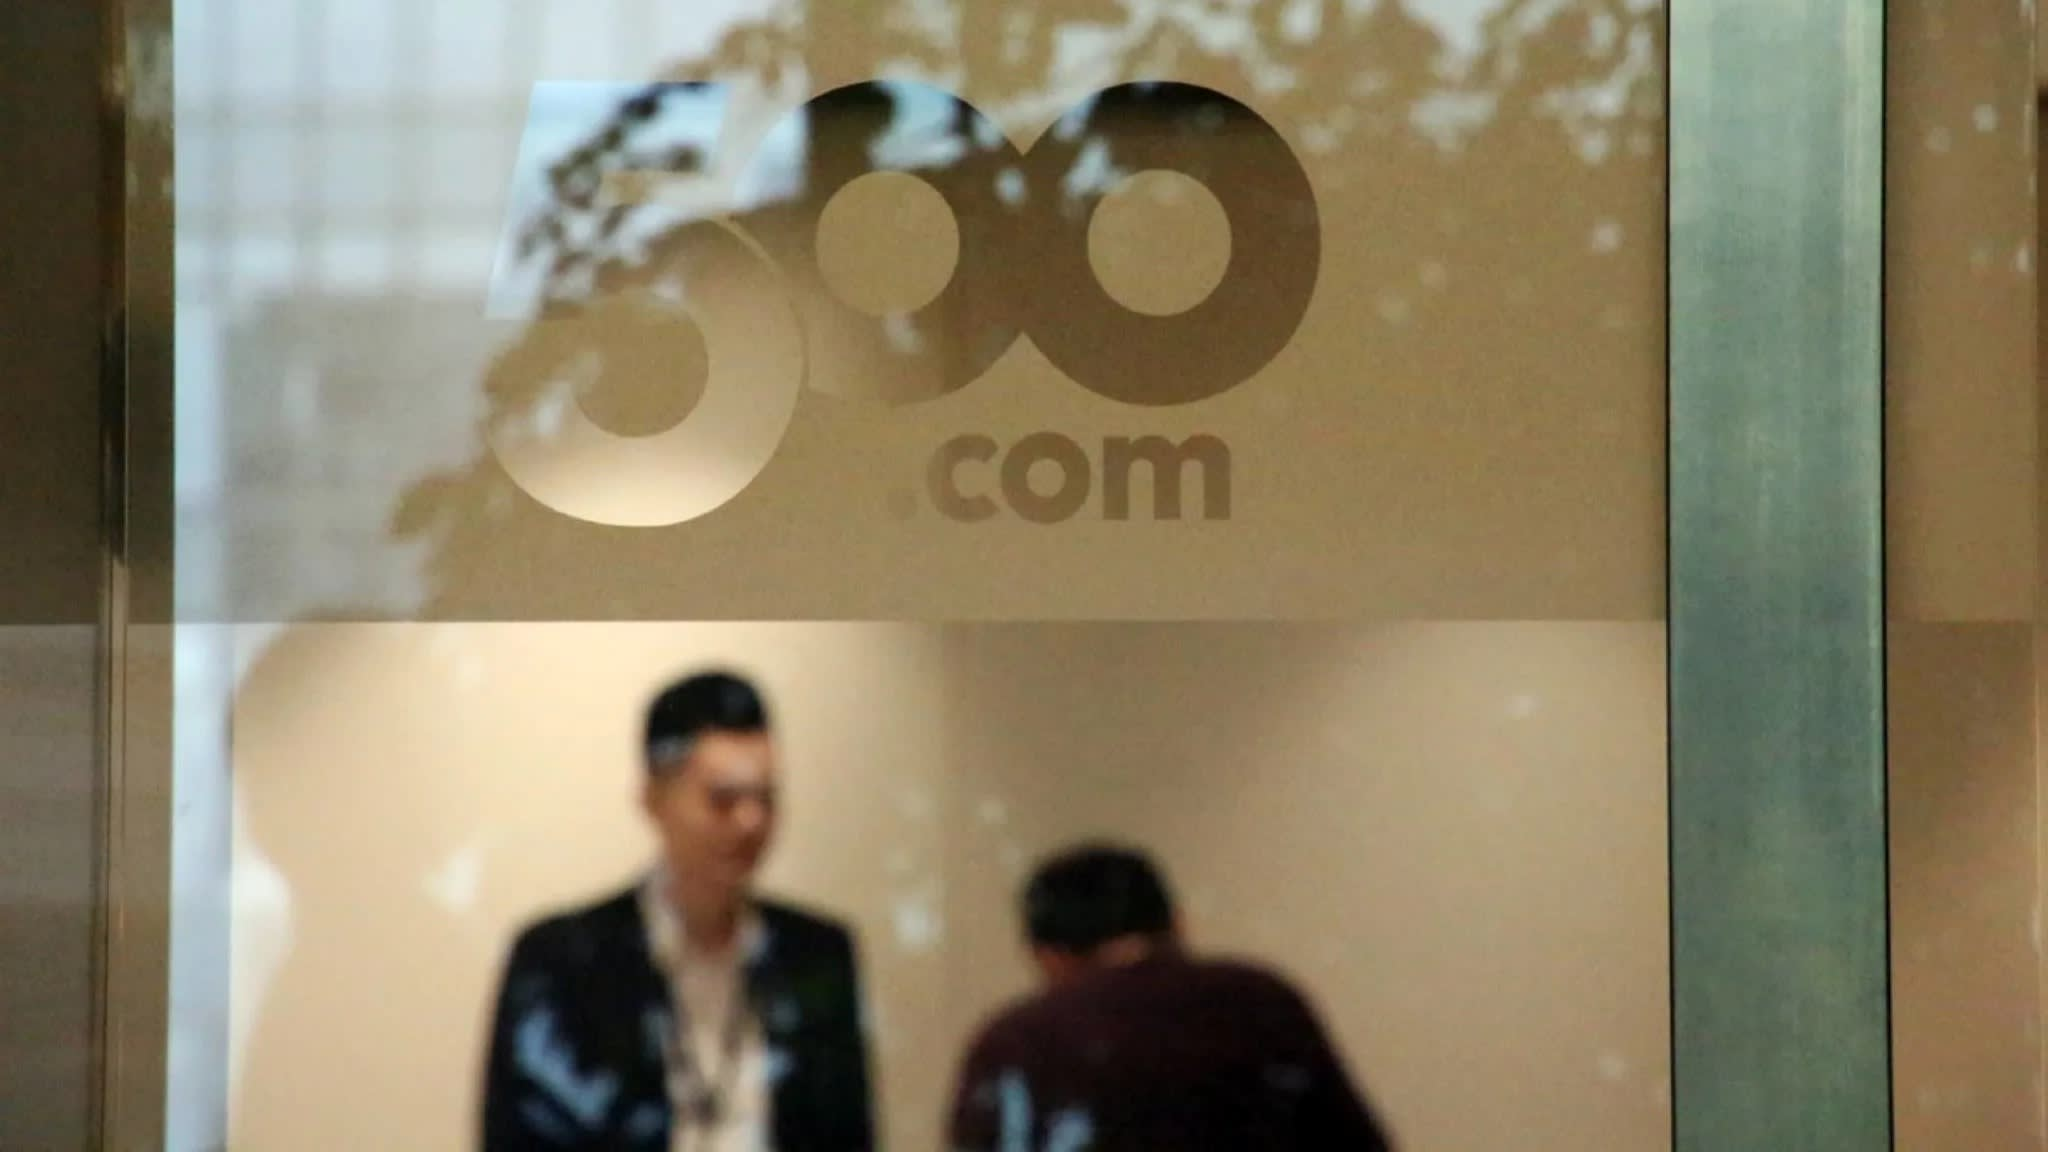 Embroiled In Japan's Casino Bribery Scandal, 500.com Has To Suspend Swedish Operations